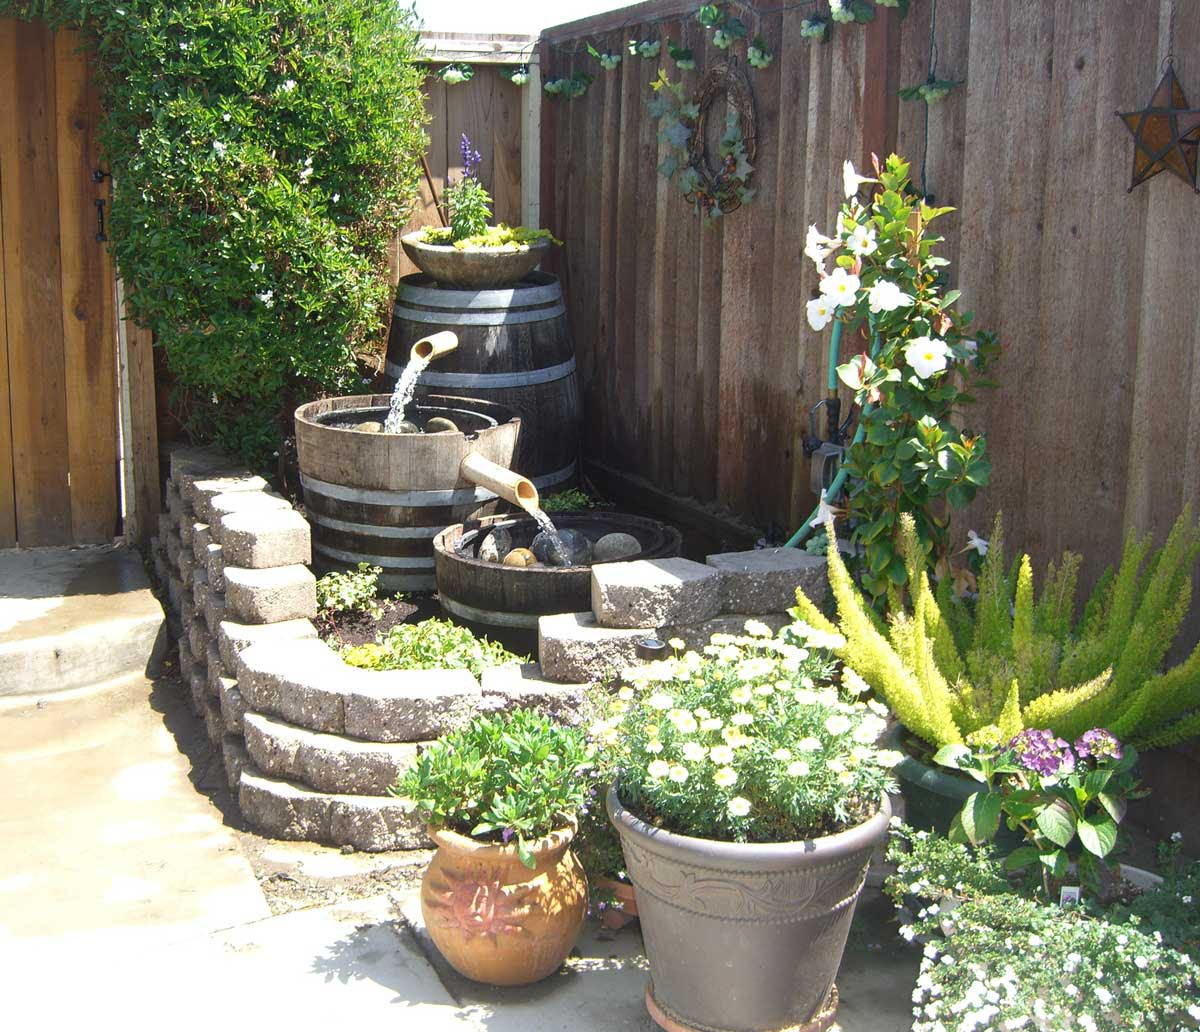 Landscape Design with Water Fountains